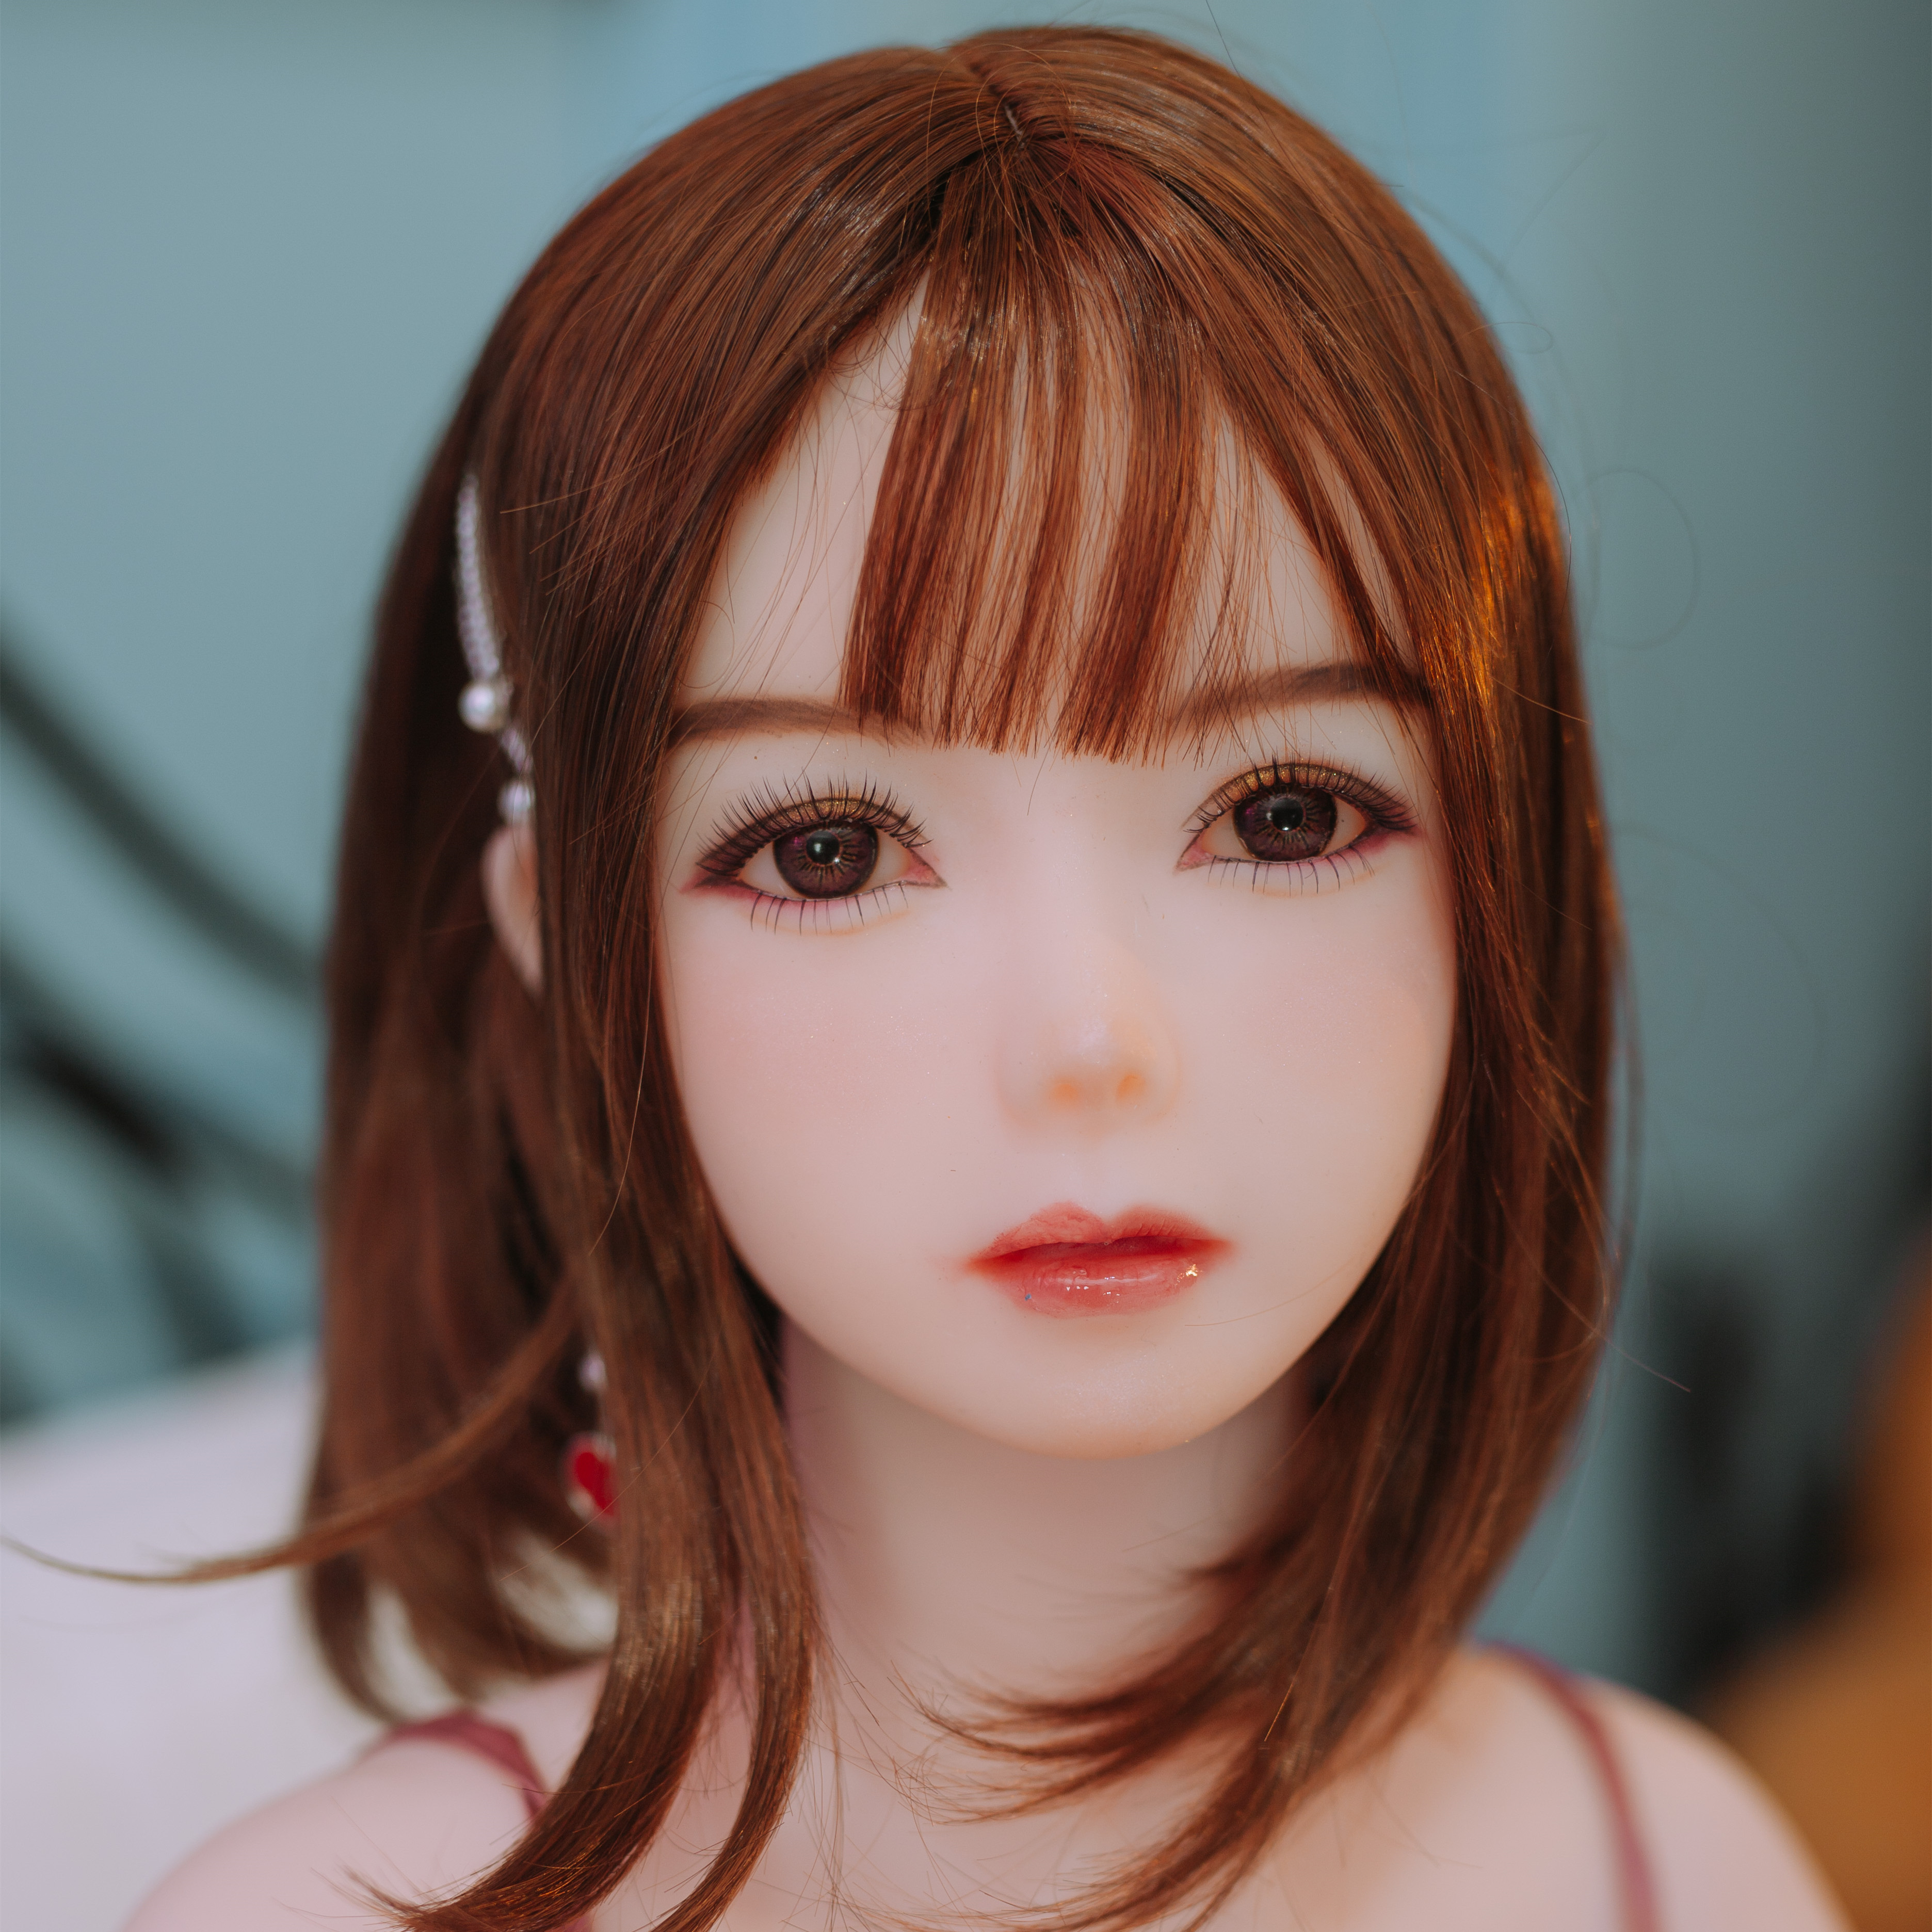 actress-love-doll-young-girl-young